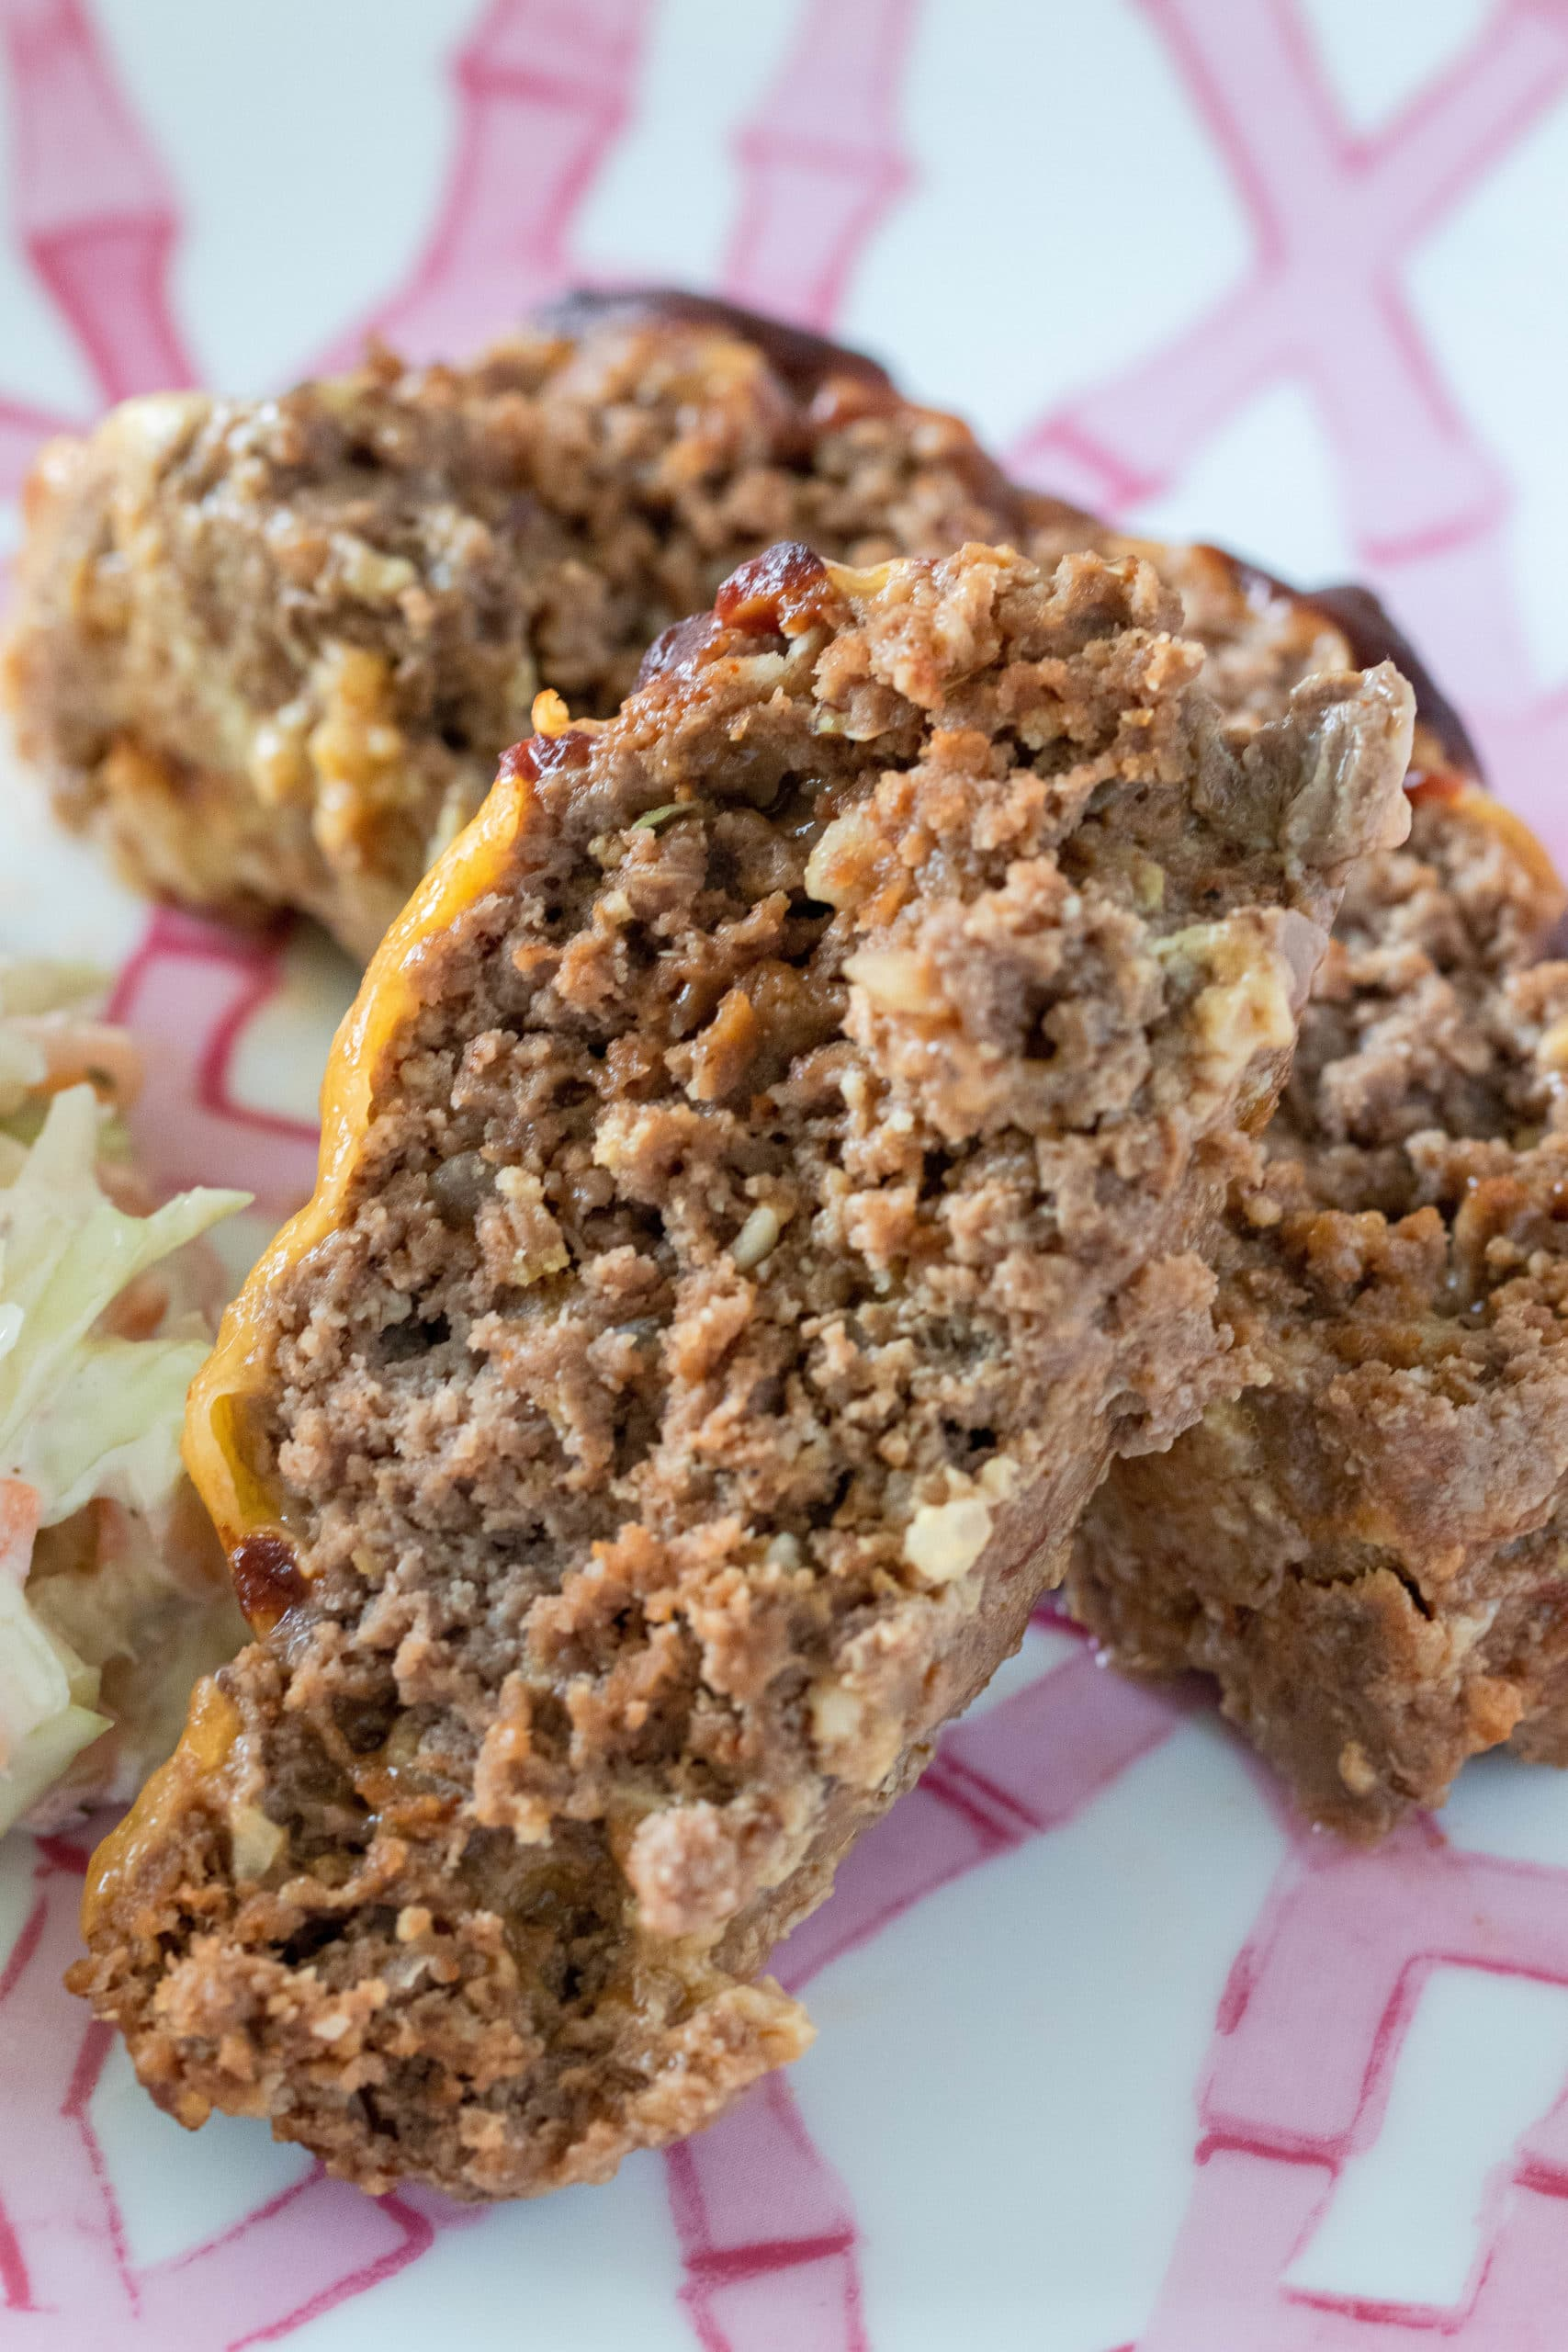 BBQ cheddar meatloaf made without breadcrumbs. This gluten free meatloaf is free of grains, oatmeal, and rice. Also a clean keto meatloaf recipe.